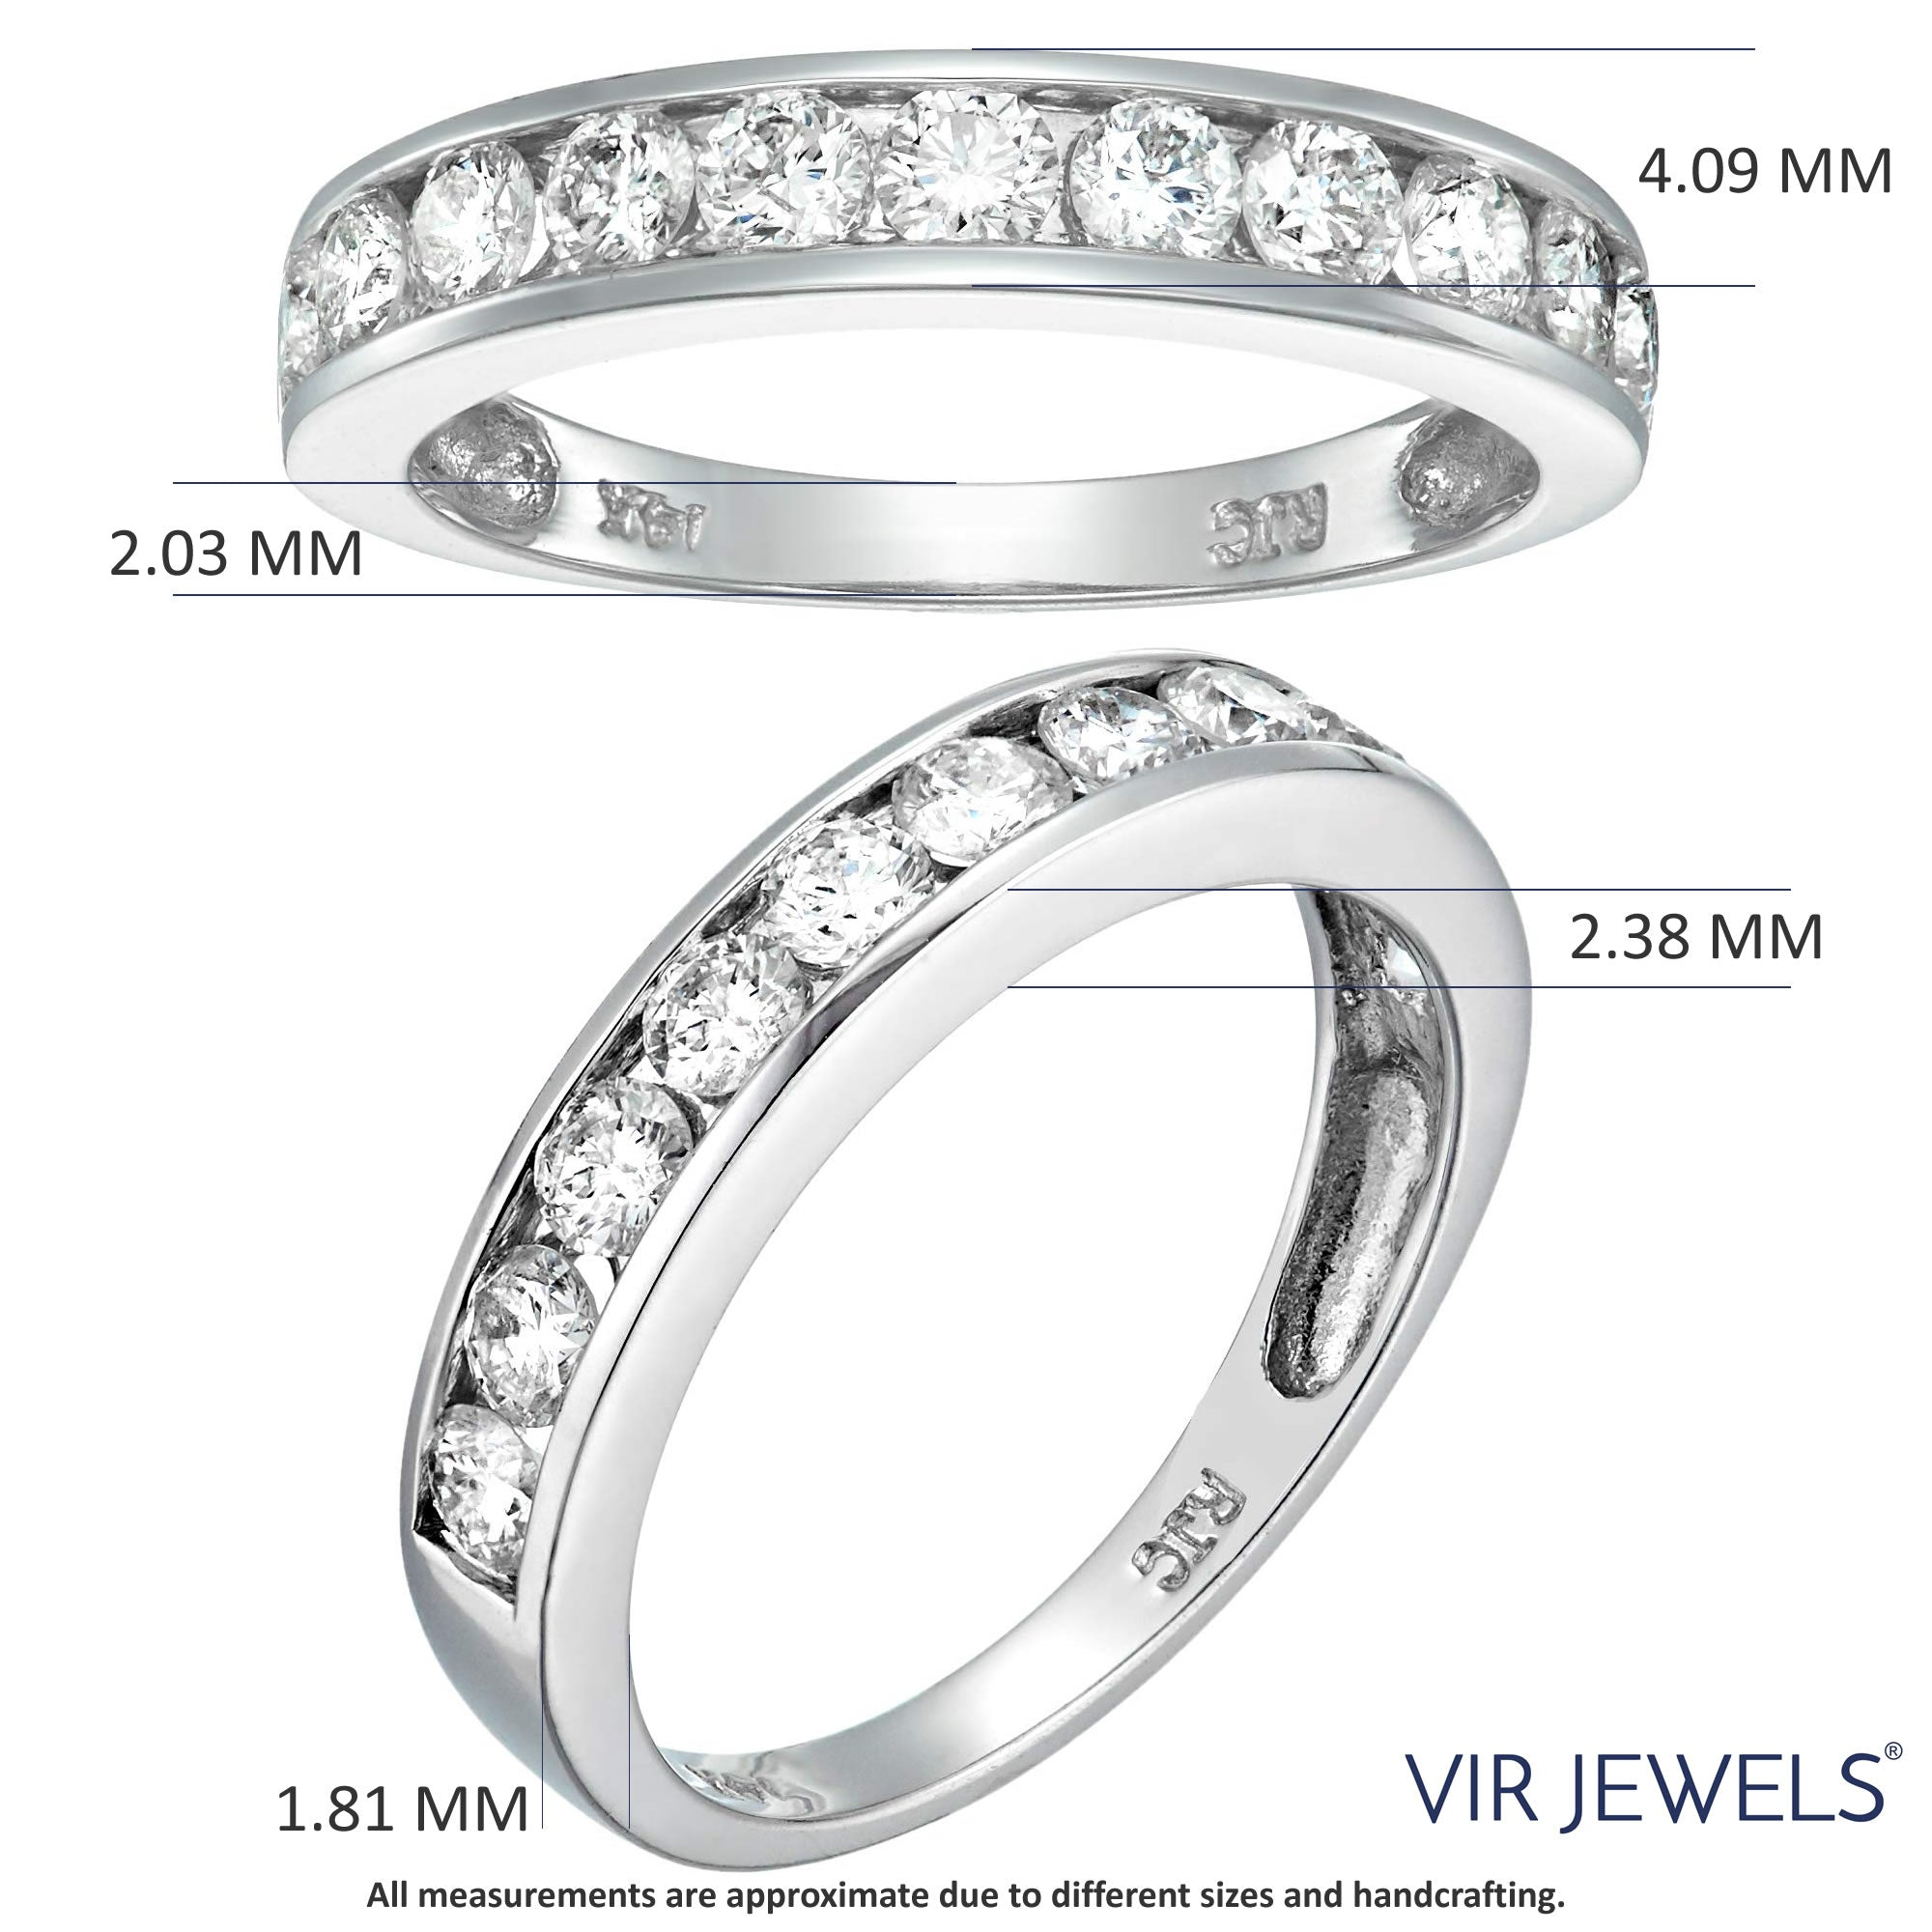 size ring carat pictures your ashworthmairsgroup fingers rings me luxury fresh show with wedding of